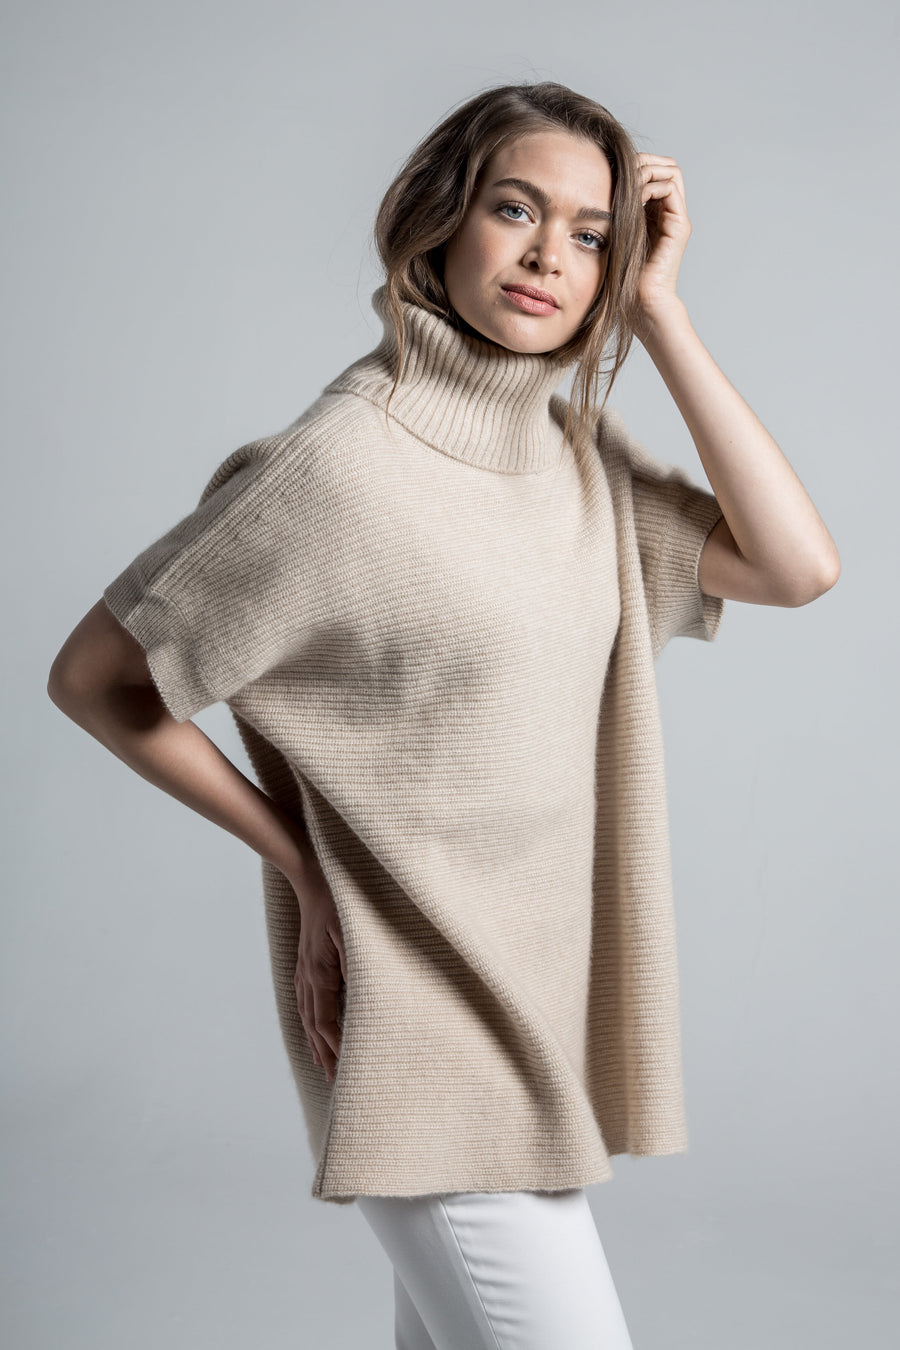 womens claire chunky knit oversized 100% pure organic cashmere turtleneck sweater in tan beige